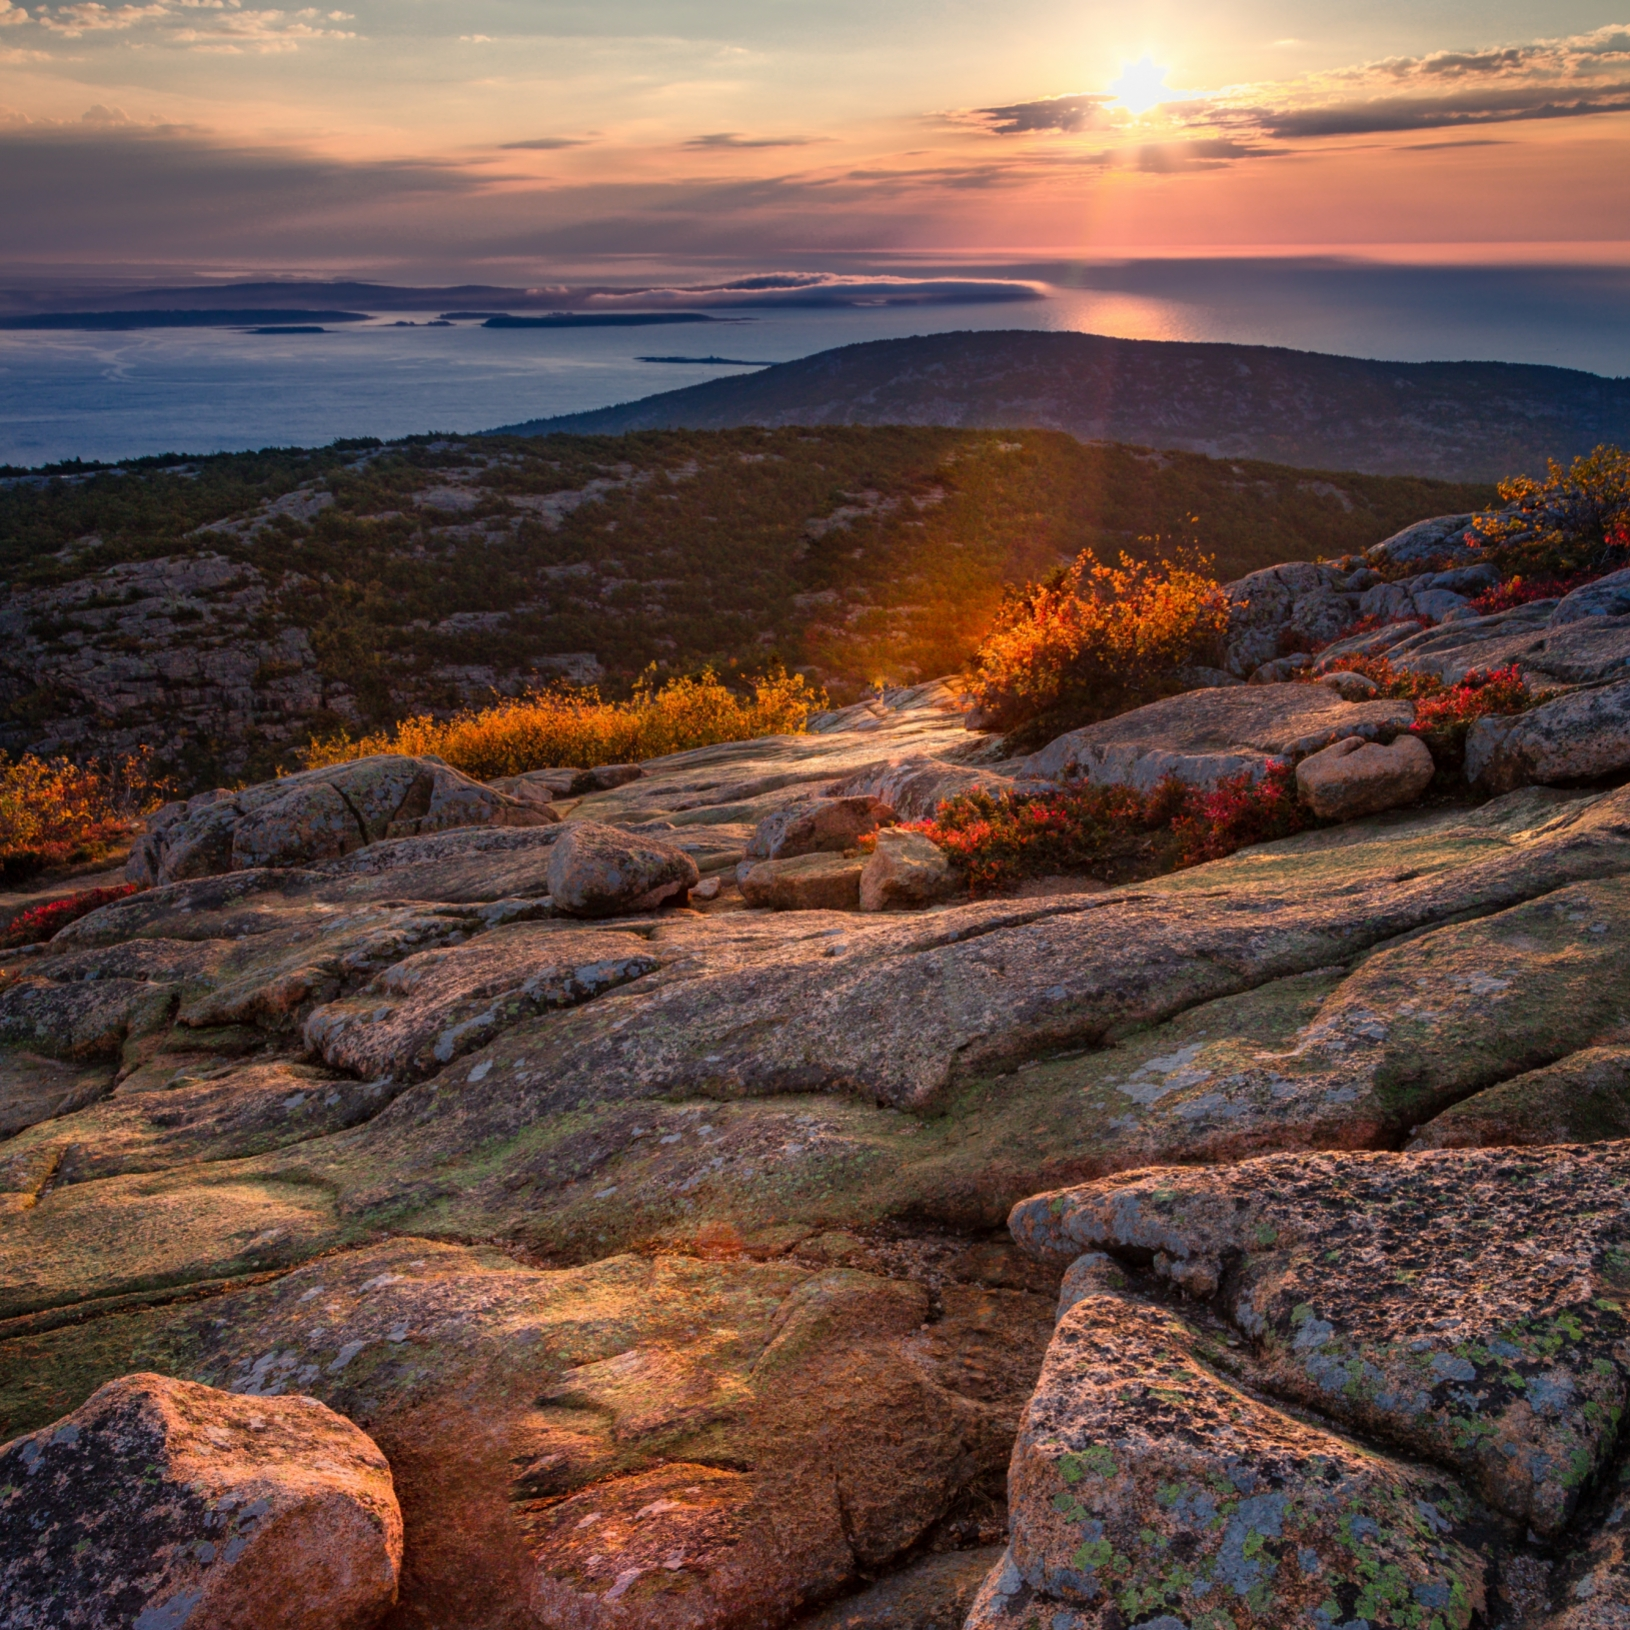 Sunrise on Cadillac Mountain in the Autumn of 2018